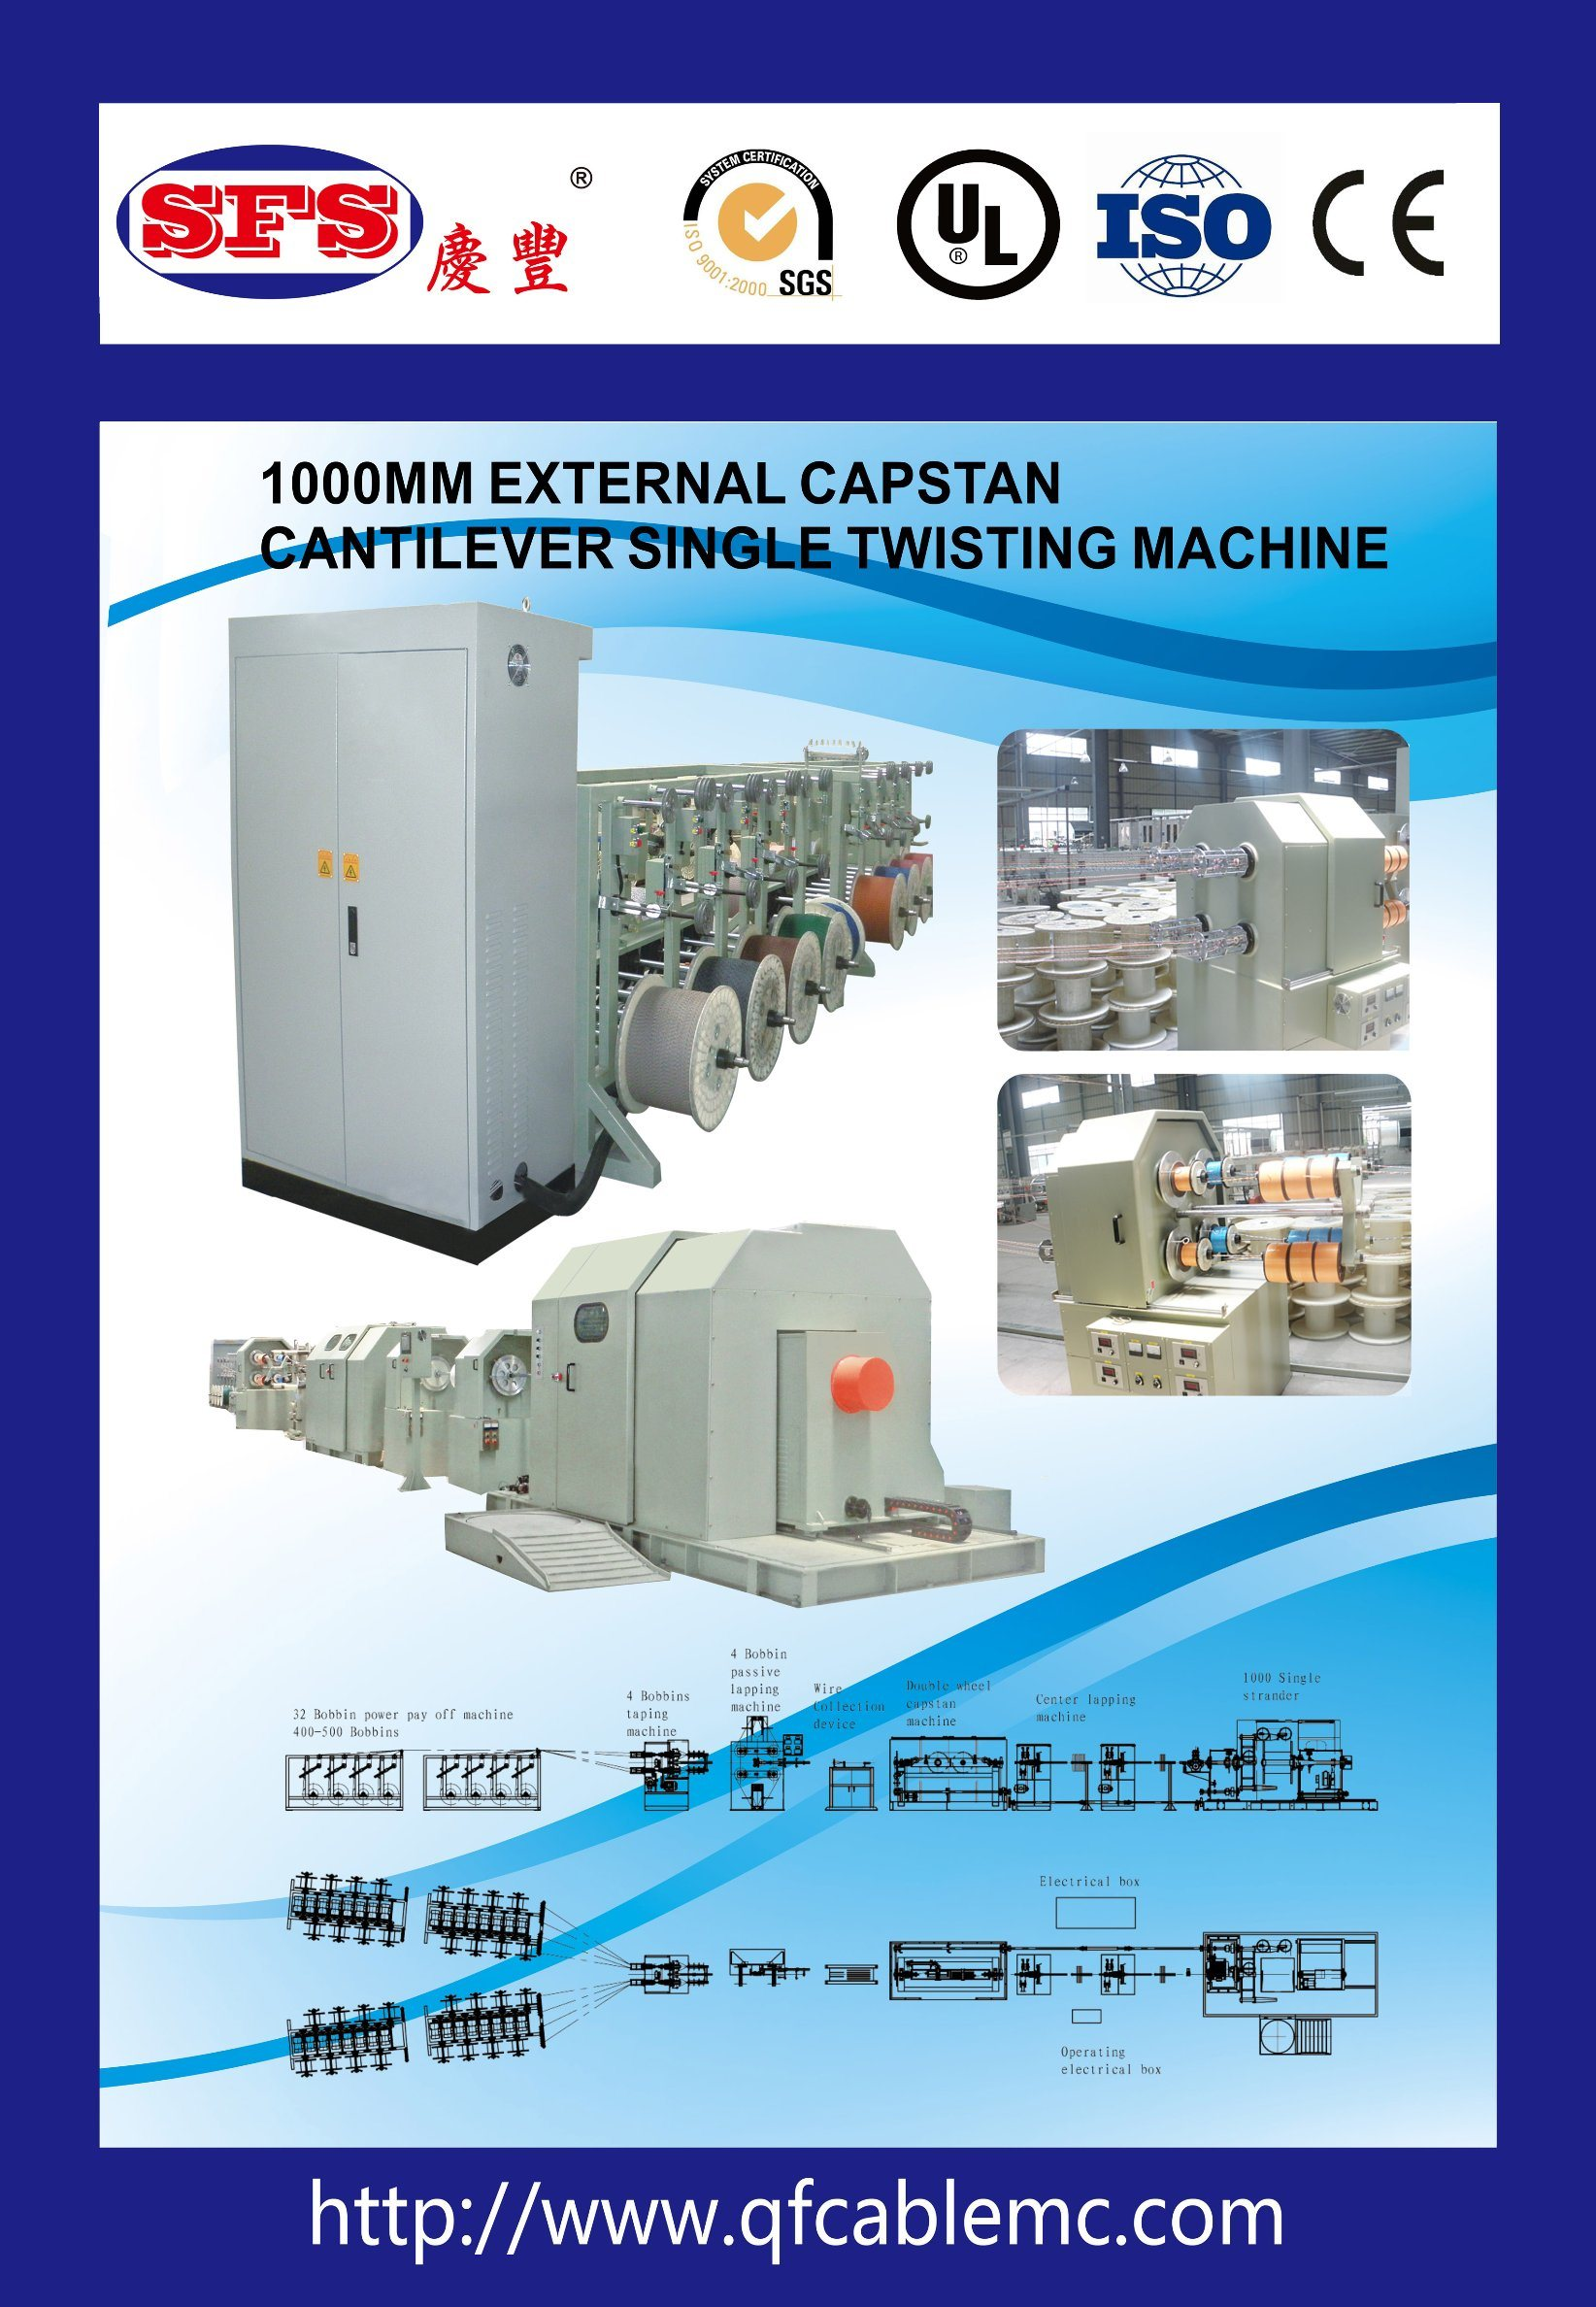 1000 Cantilever Single Twister Cabling Machine